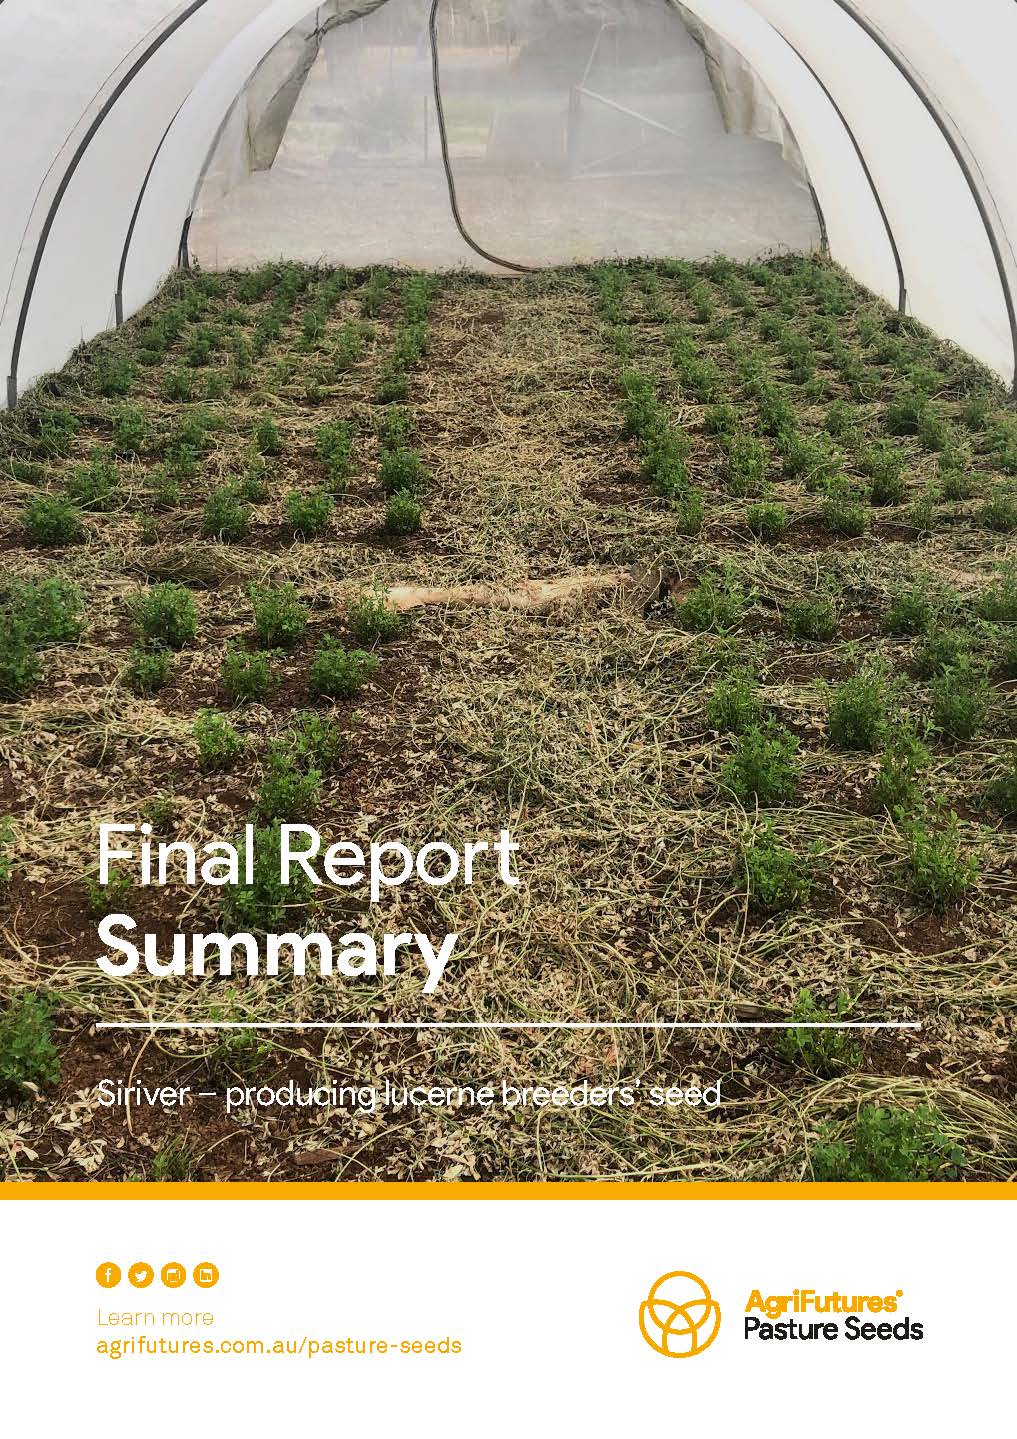 Final report summary: Siriver - Producing lucerne breeders' seed - image